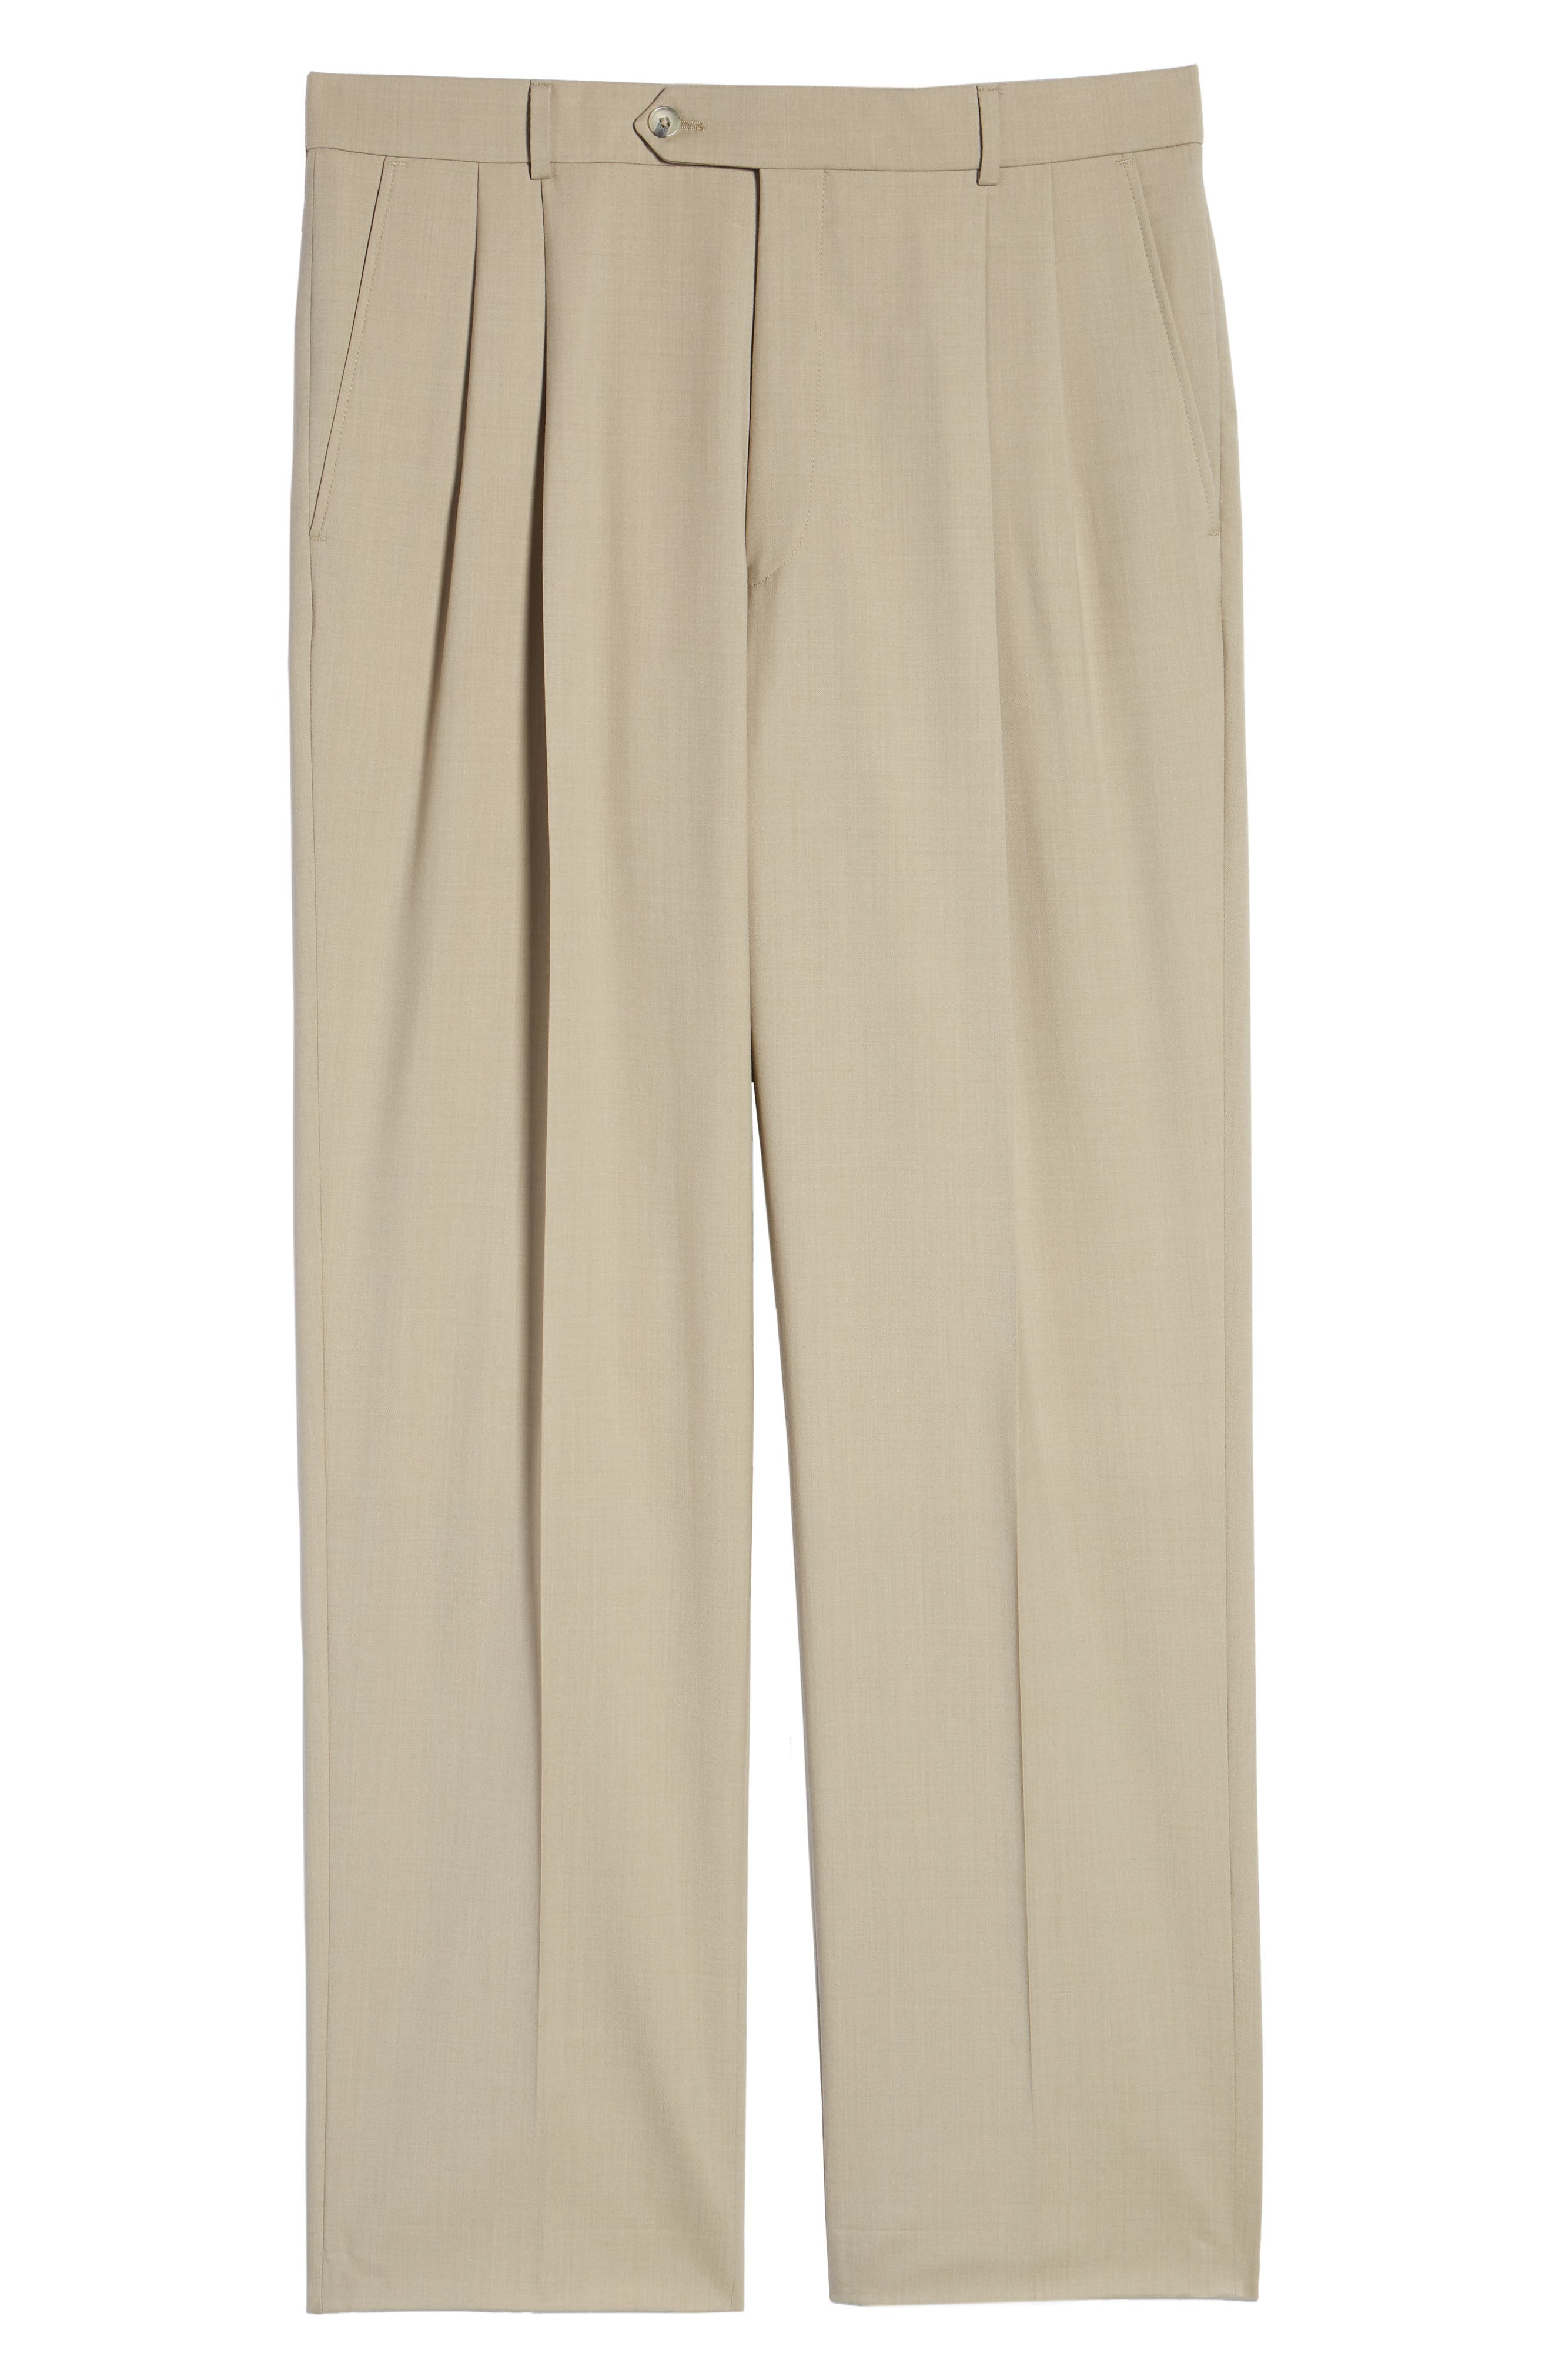 BALLIN, Pleated Solid Wool Trousers, Alternate thumbnail 6, color, OATMEAL